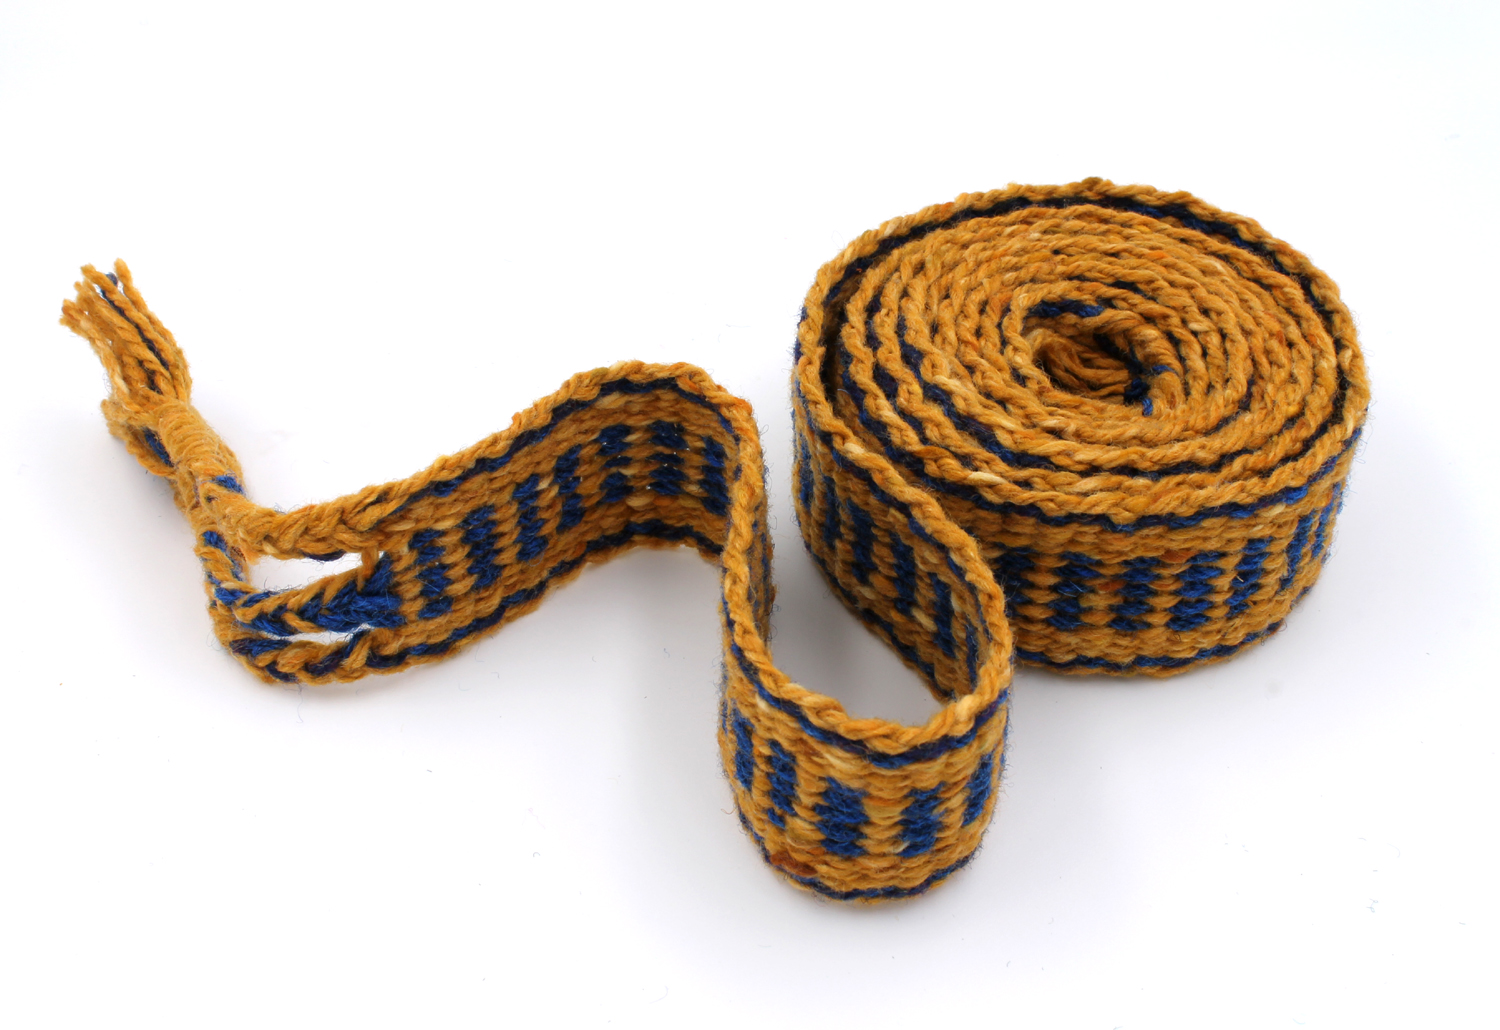 Handfasting Cord - Sapphire and Gold  (6